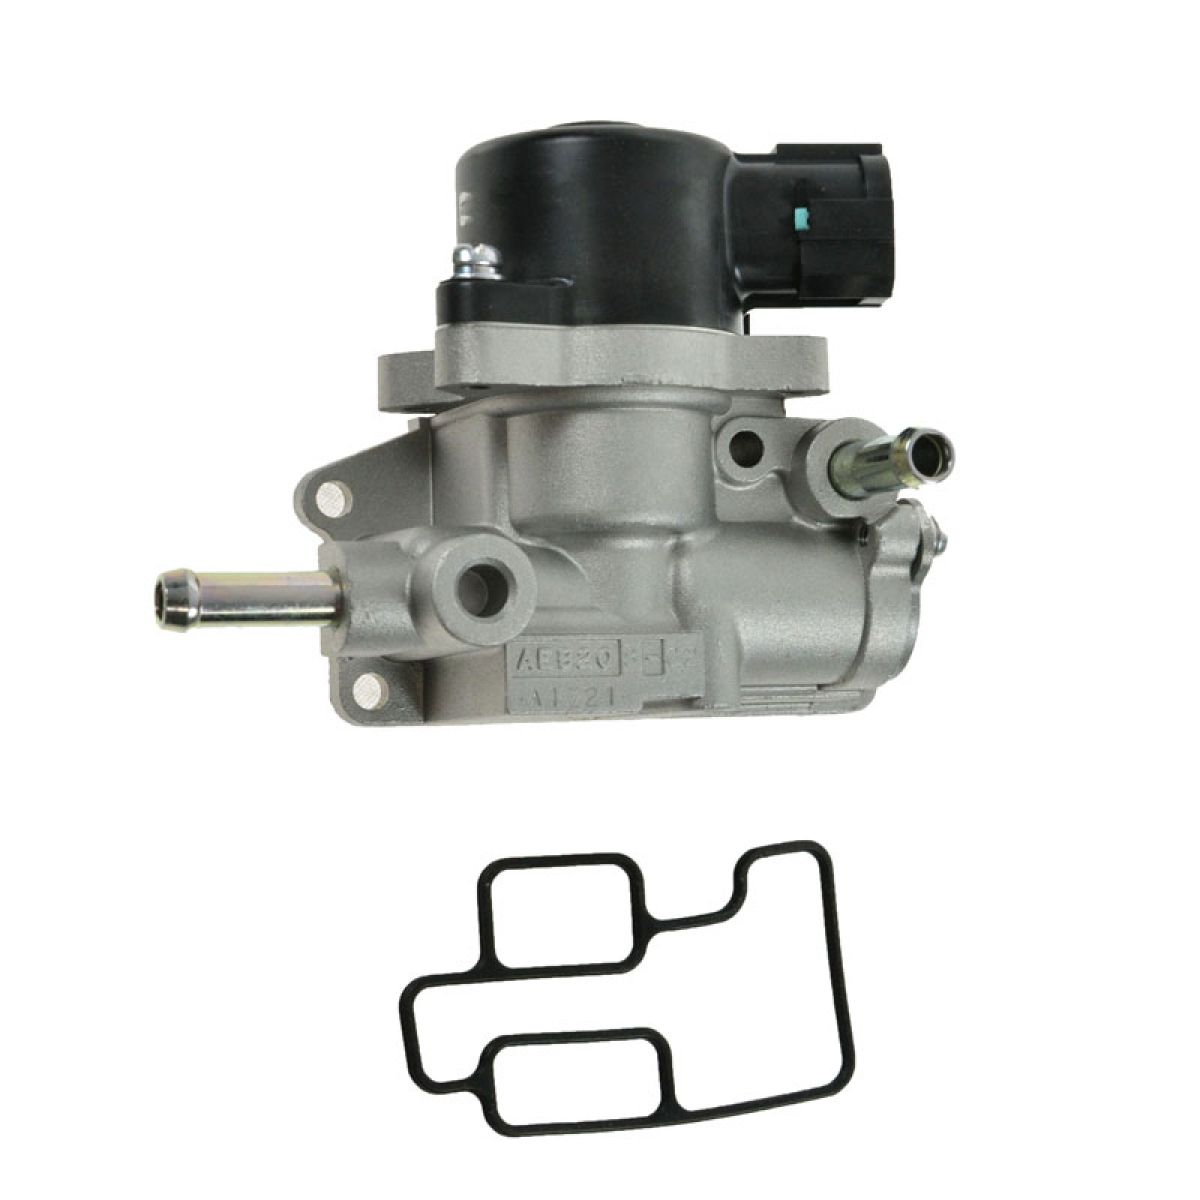 Details about Replacement IAC Idle Air Control Valve NEW for Infiniti I30  Nissan Maxima